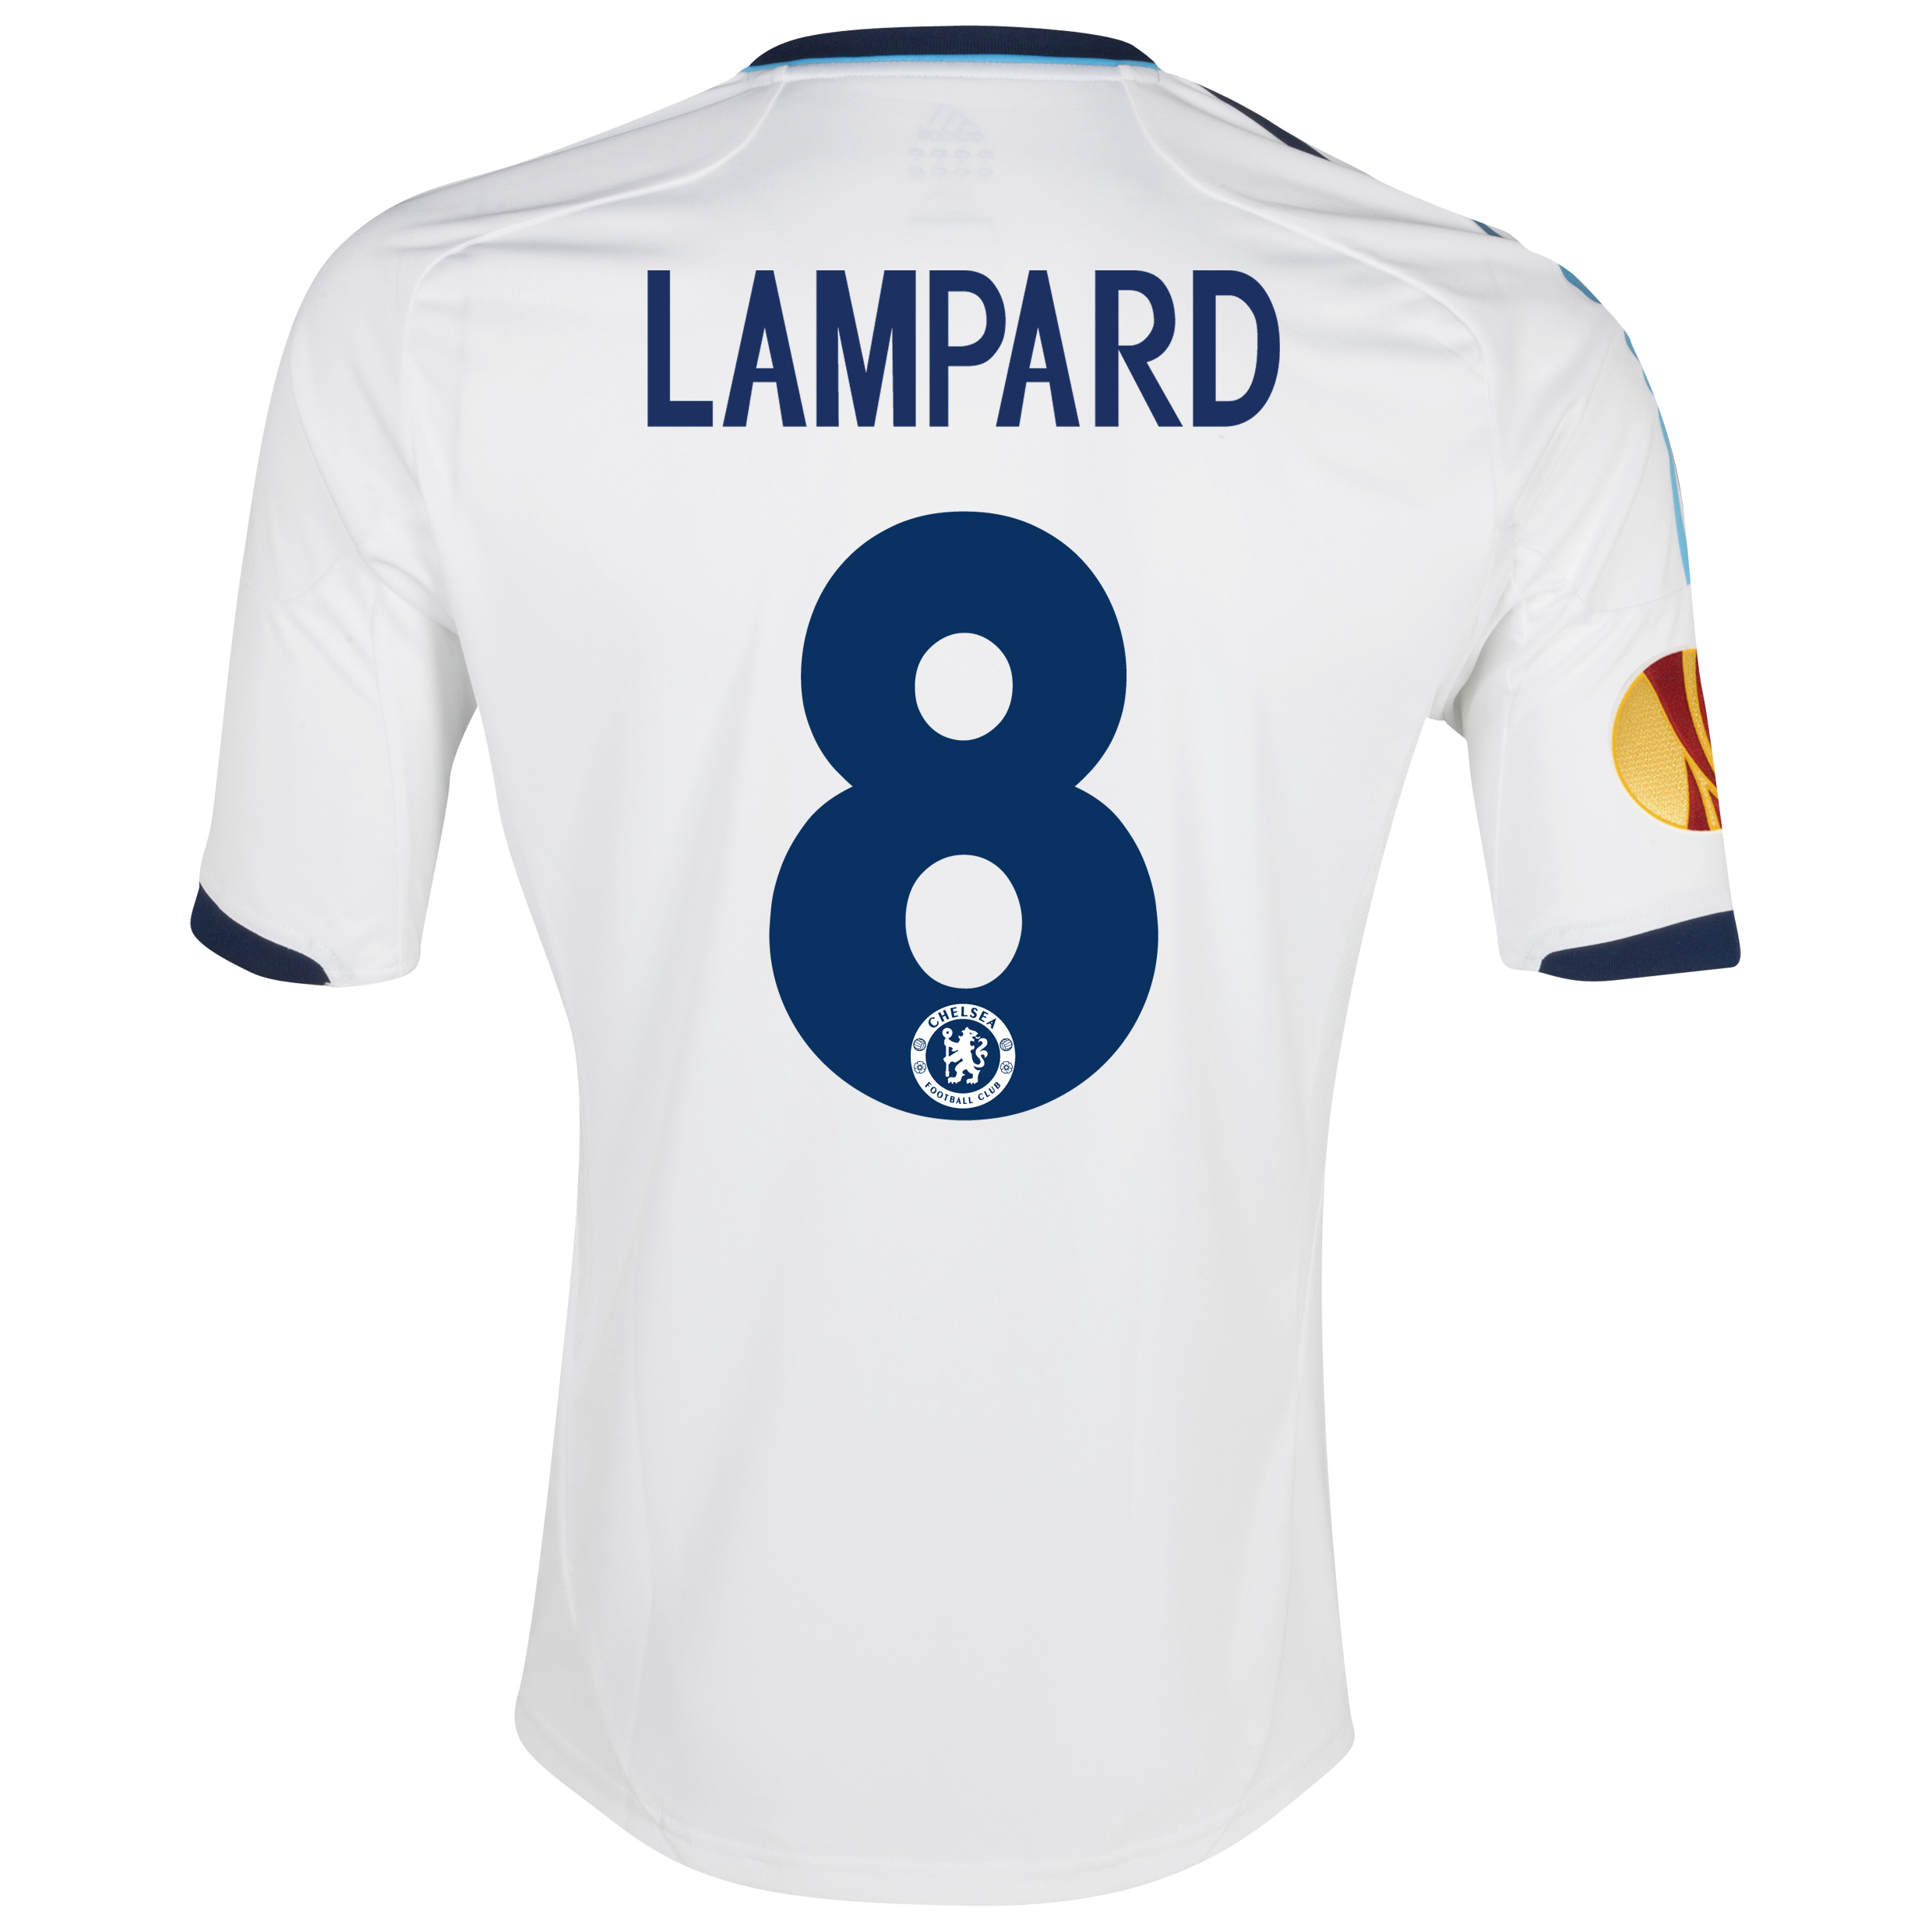 Chelsea UEFA Europa League Away Shirt 2012/13 - Kids with Lampard 8 printing Including Europa Badge